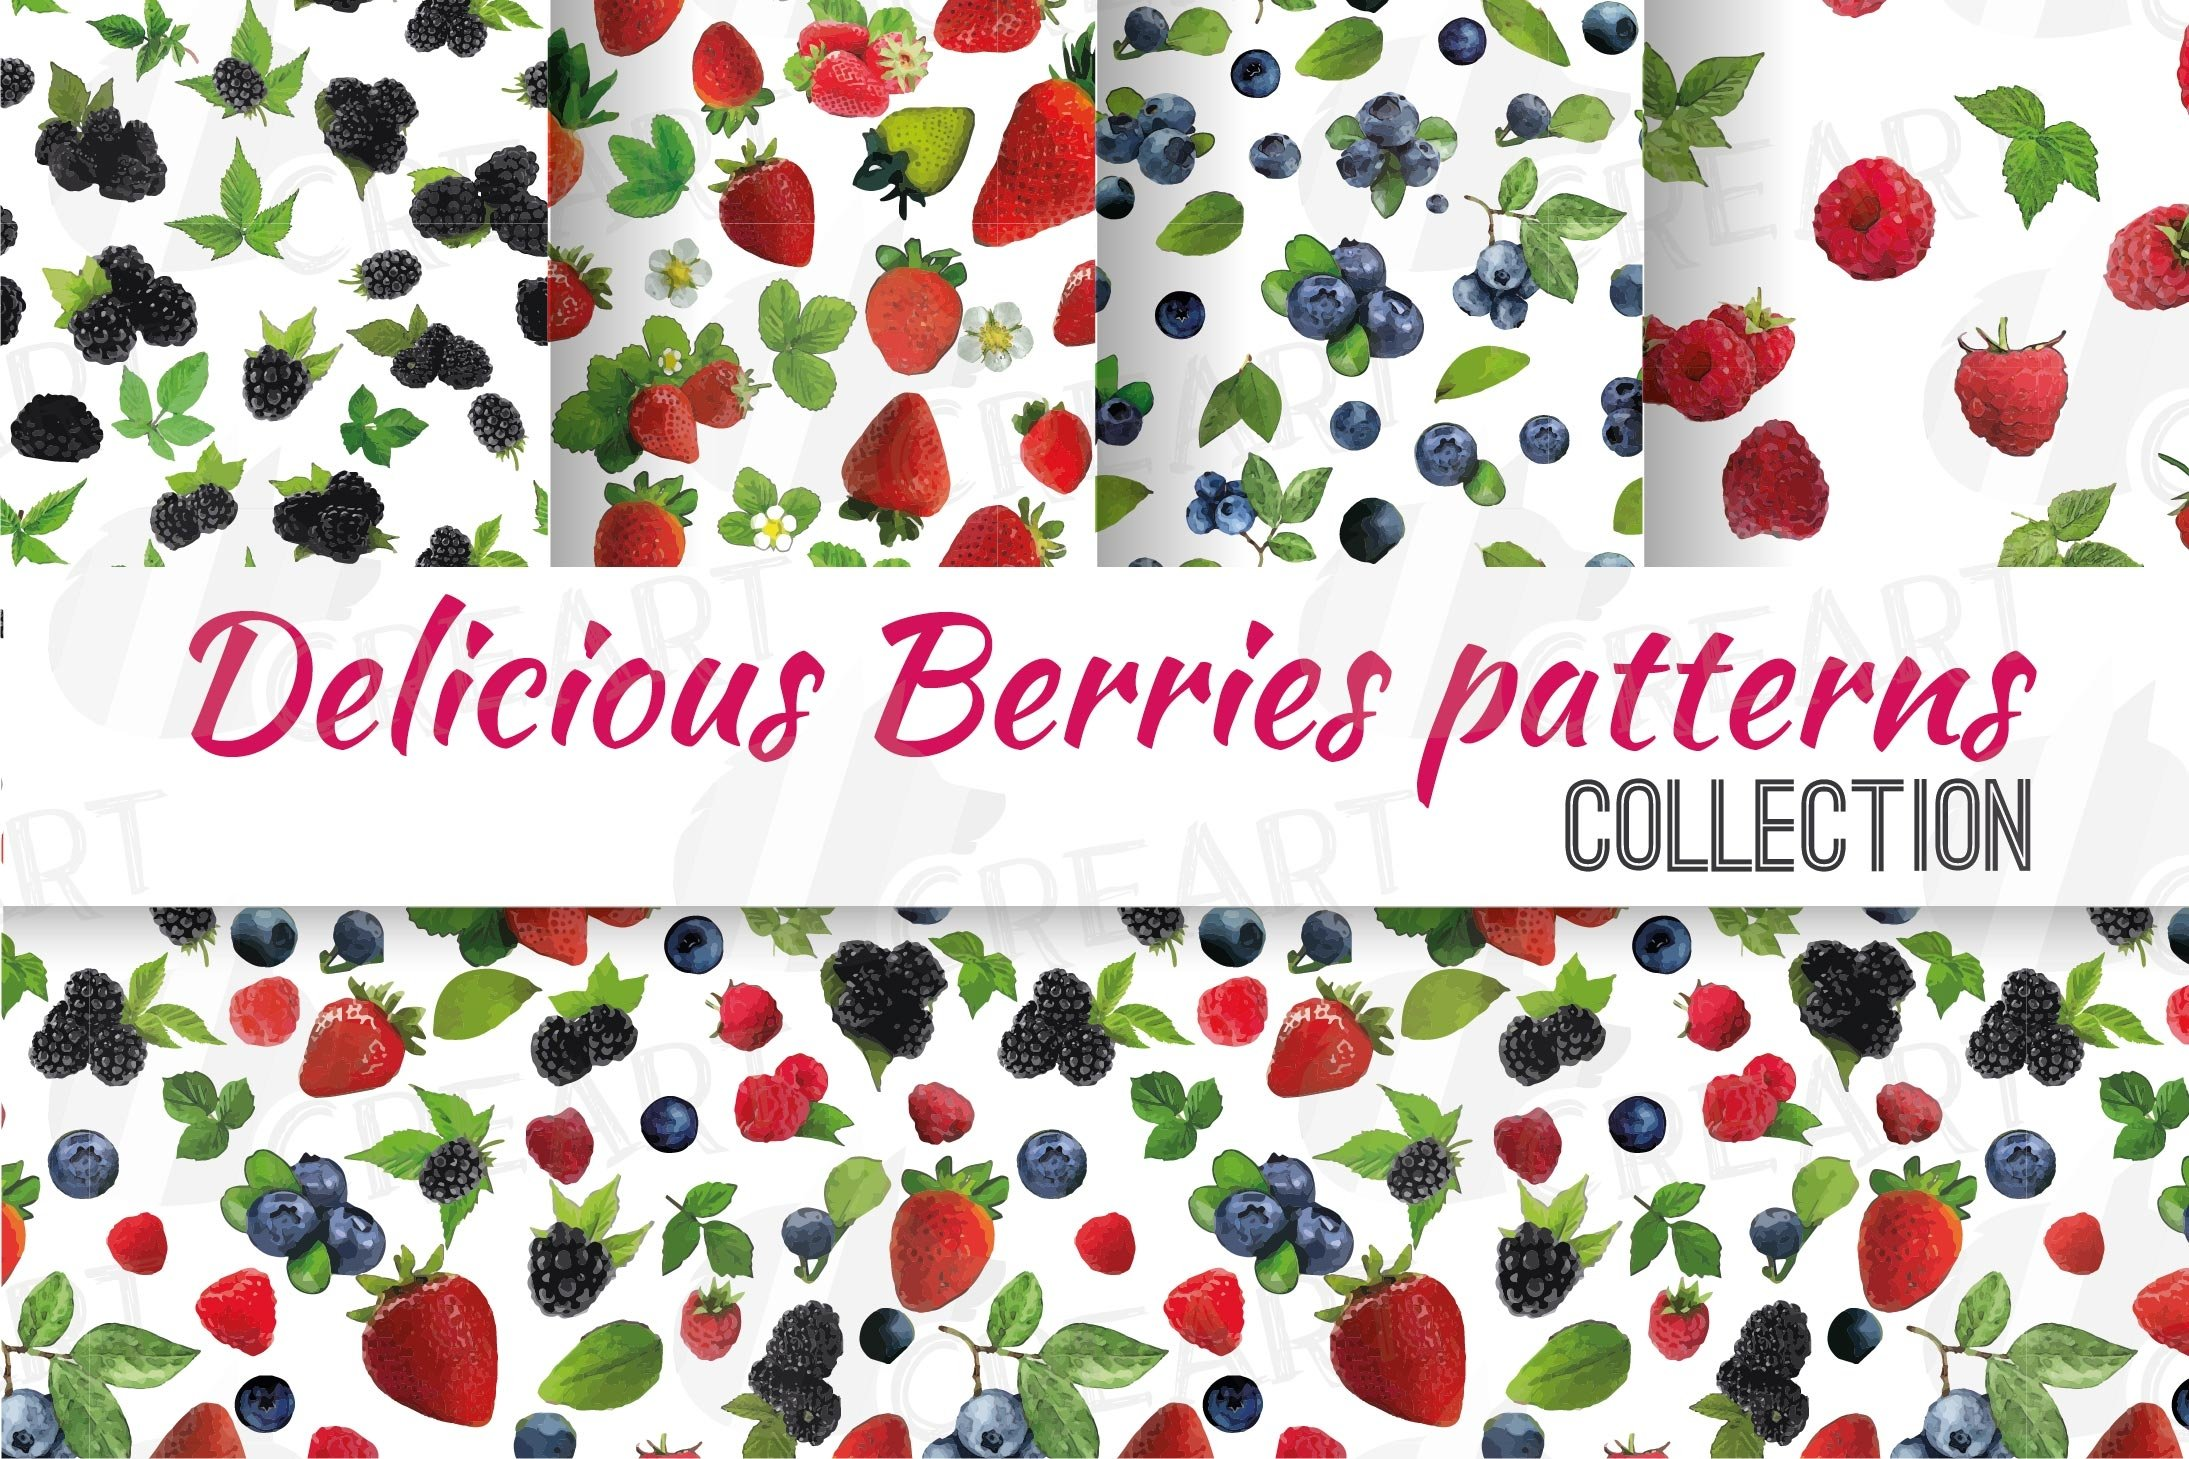 scrapbooking wild berries patterns blueberry and flowers bouquets SEAMLESS Watercolor Blueberries digital Paper Pack background